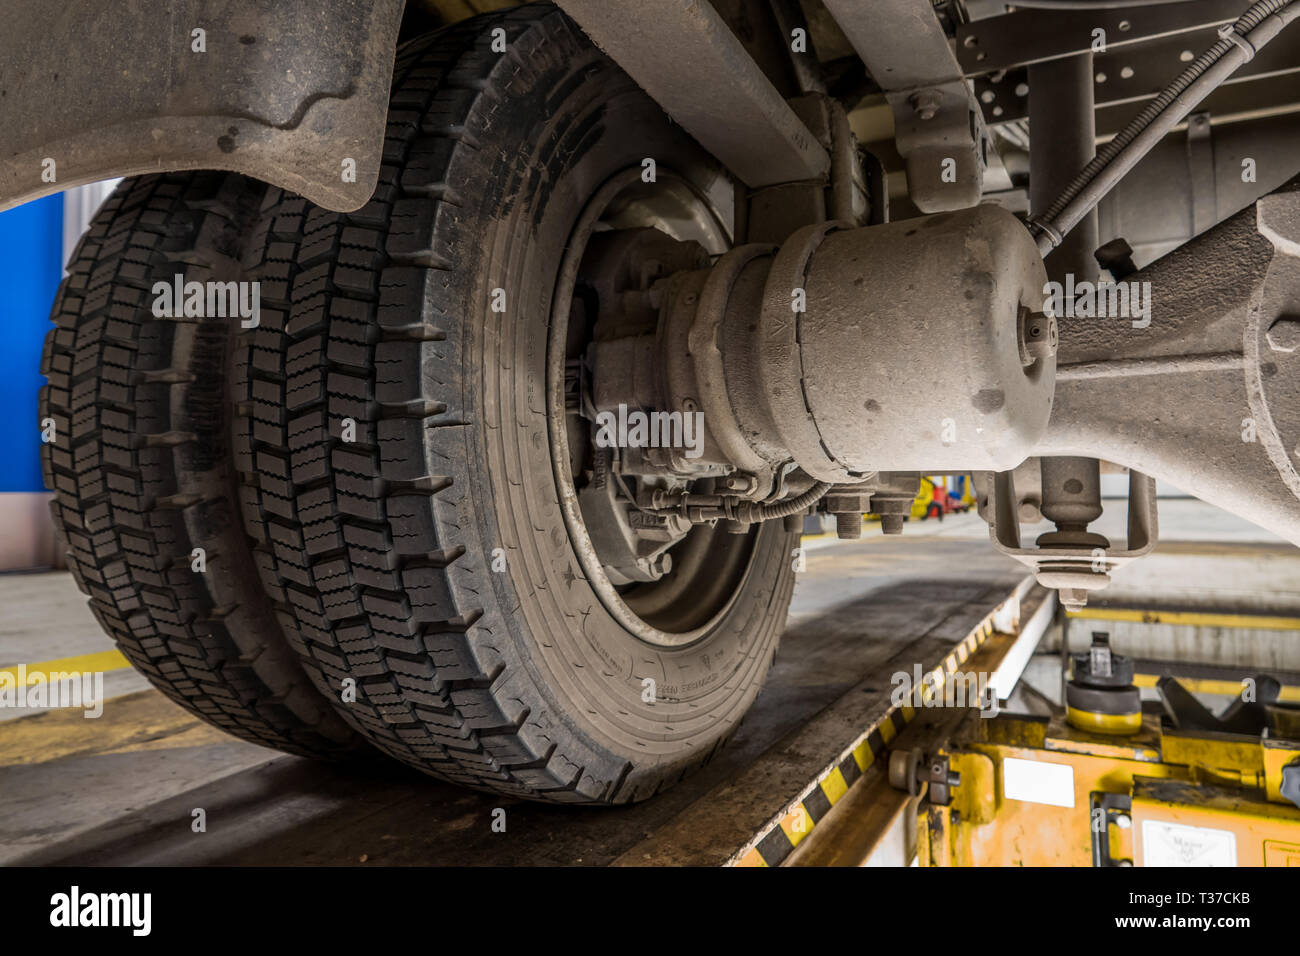 View of disc brakes and suspension on a small truck from maintenance pit. - Stock Image